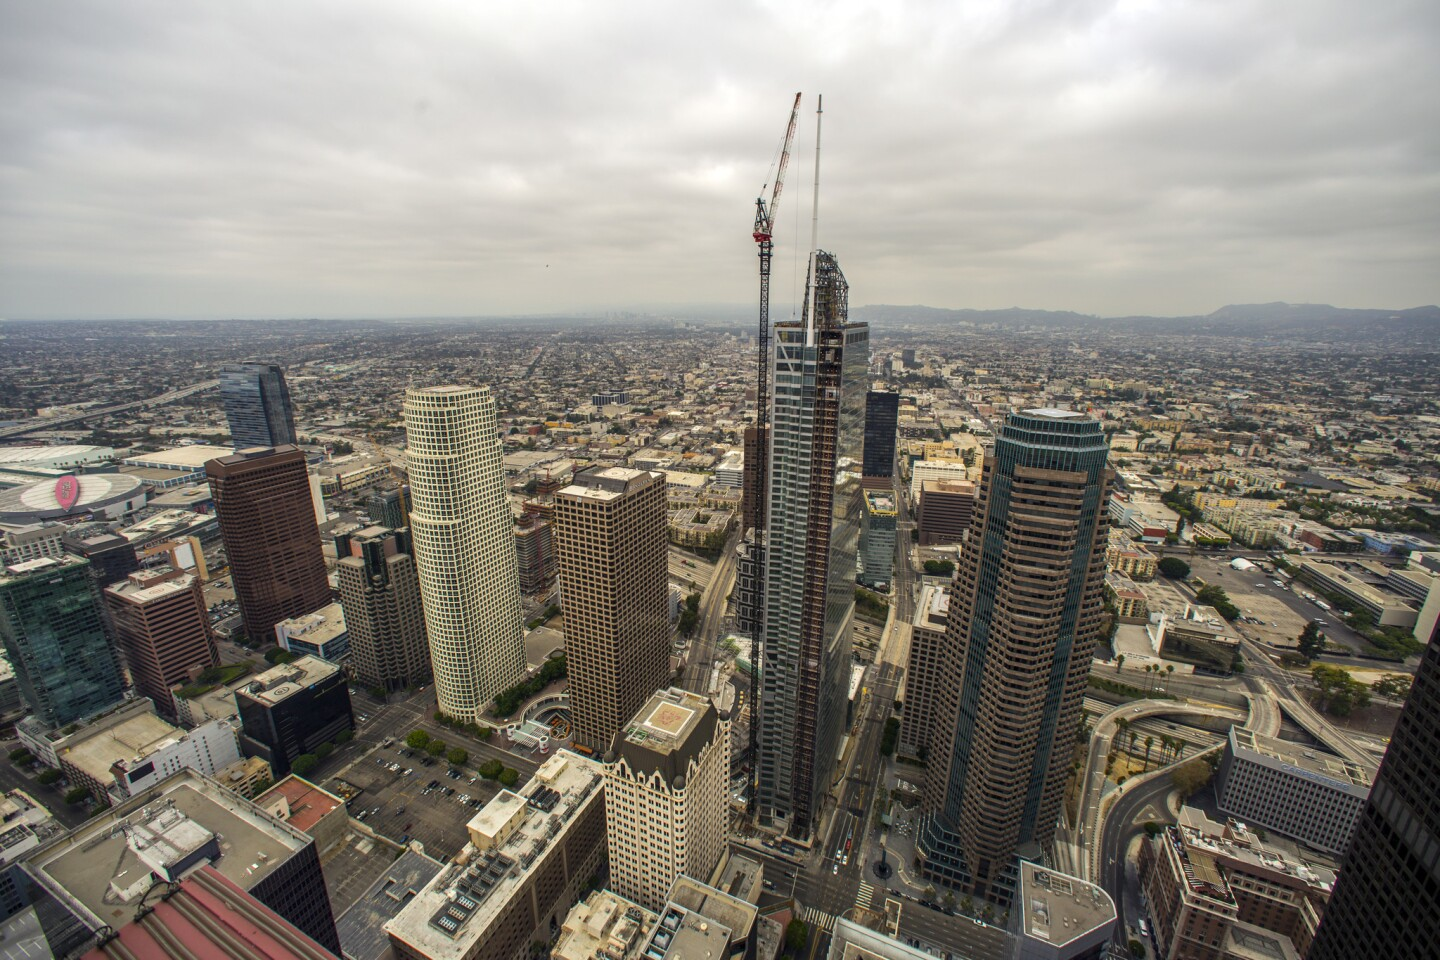 The installation of the spire atop L.A.'s 73-story Wilshire Grand, the tallest skyscraper in the West, in September 2016.